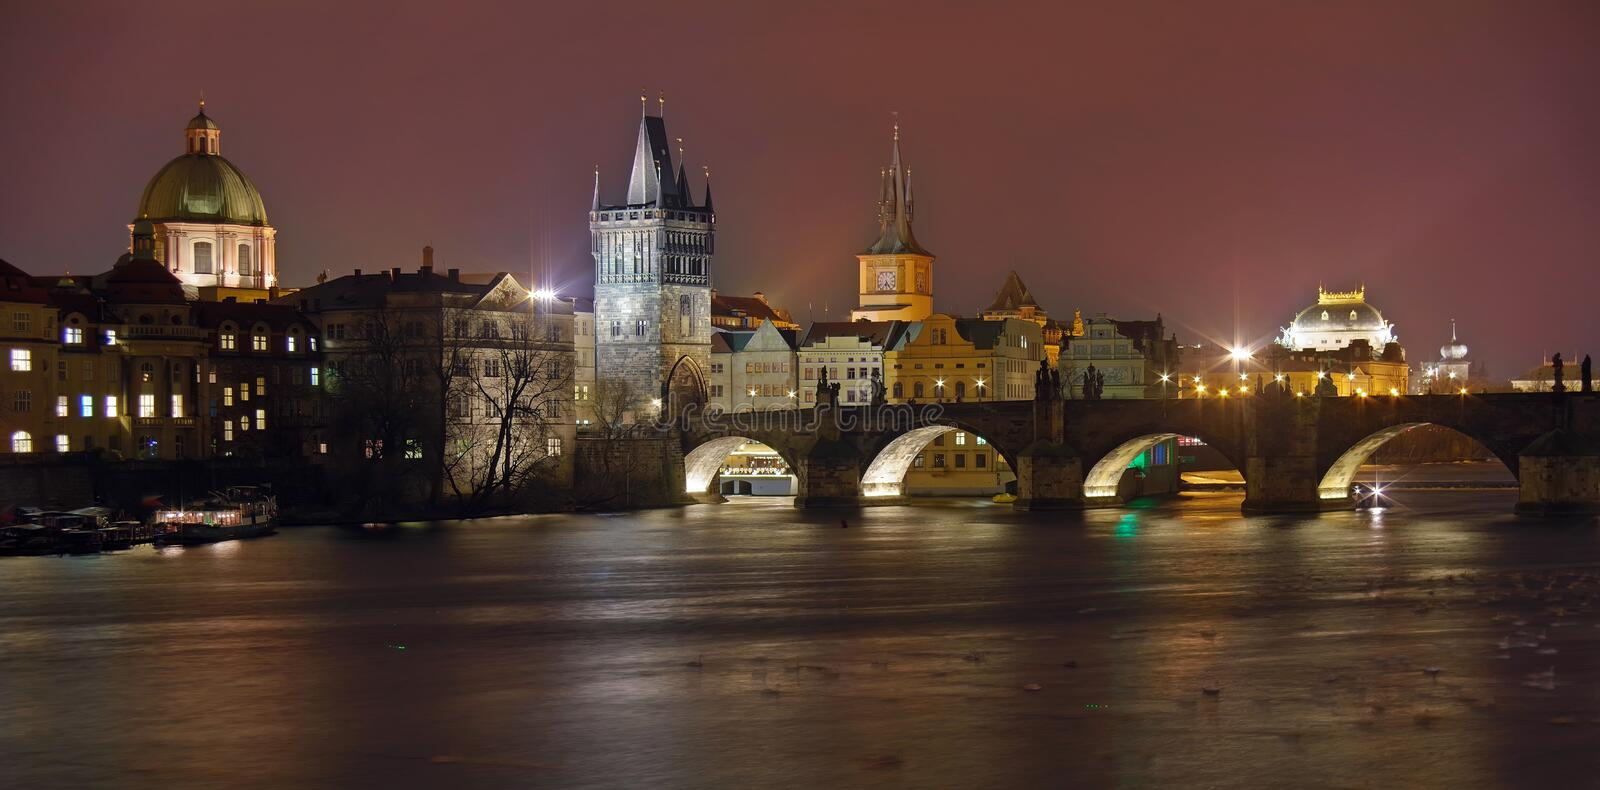 Landmark attraction in Prague: Charles Bridge, Prague Castle, Catholic Saint Vitus Cathedral and Vltava River - Czech Republic royalty free stock photo